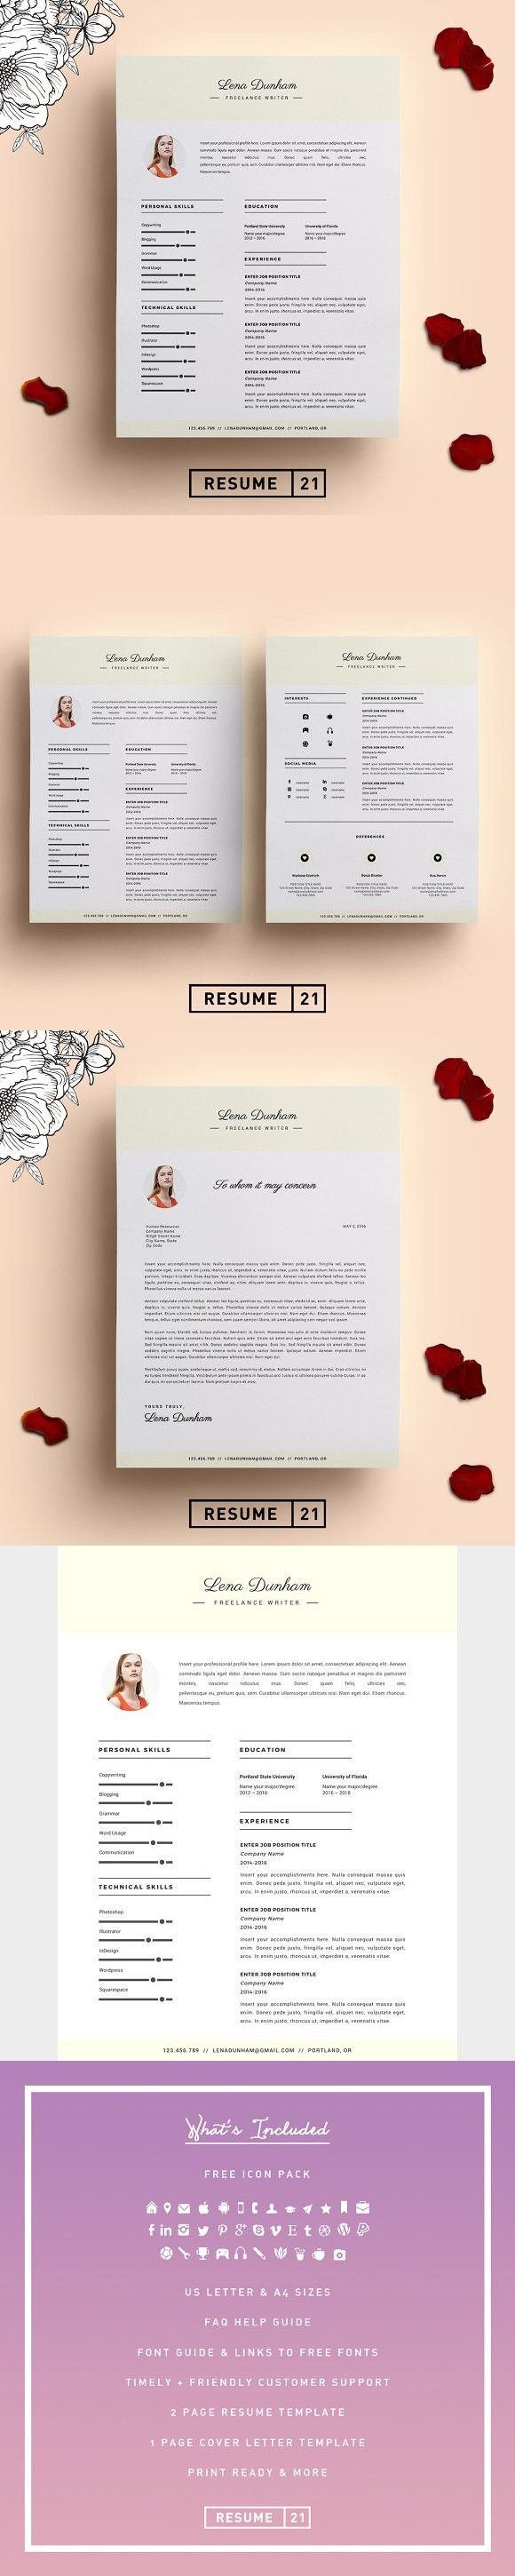 Lovely 1 Page Resume Format Download Tall 1 Page Resume Or 2 Solid 1 Year Experience Java Resume Format 11x17 Graph Paper Template Old 15 Year Old Funny Resume Gray15 Year Old Student Resume 236 Best Images About Resume Design \u0026 Layout On Pinterest | Resume ..